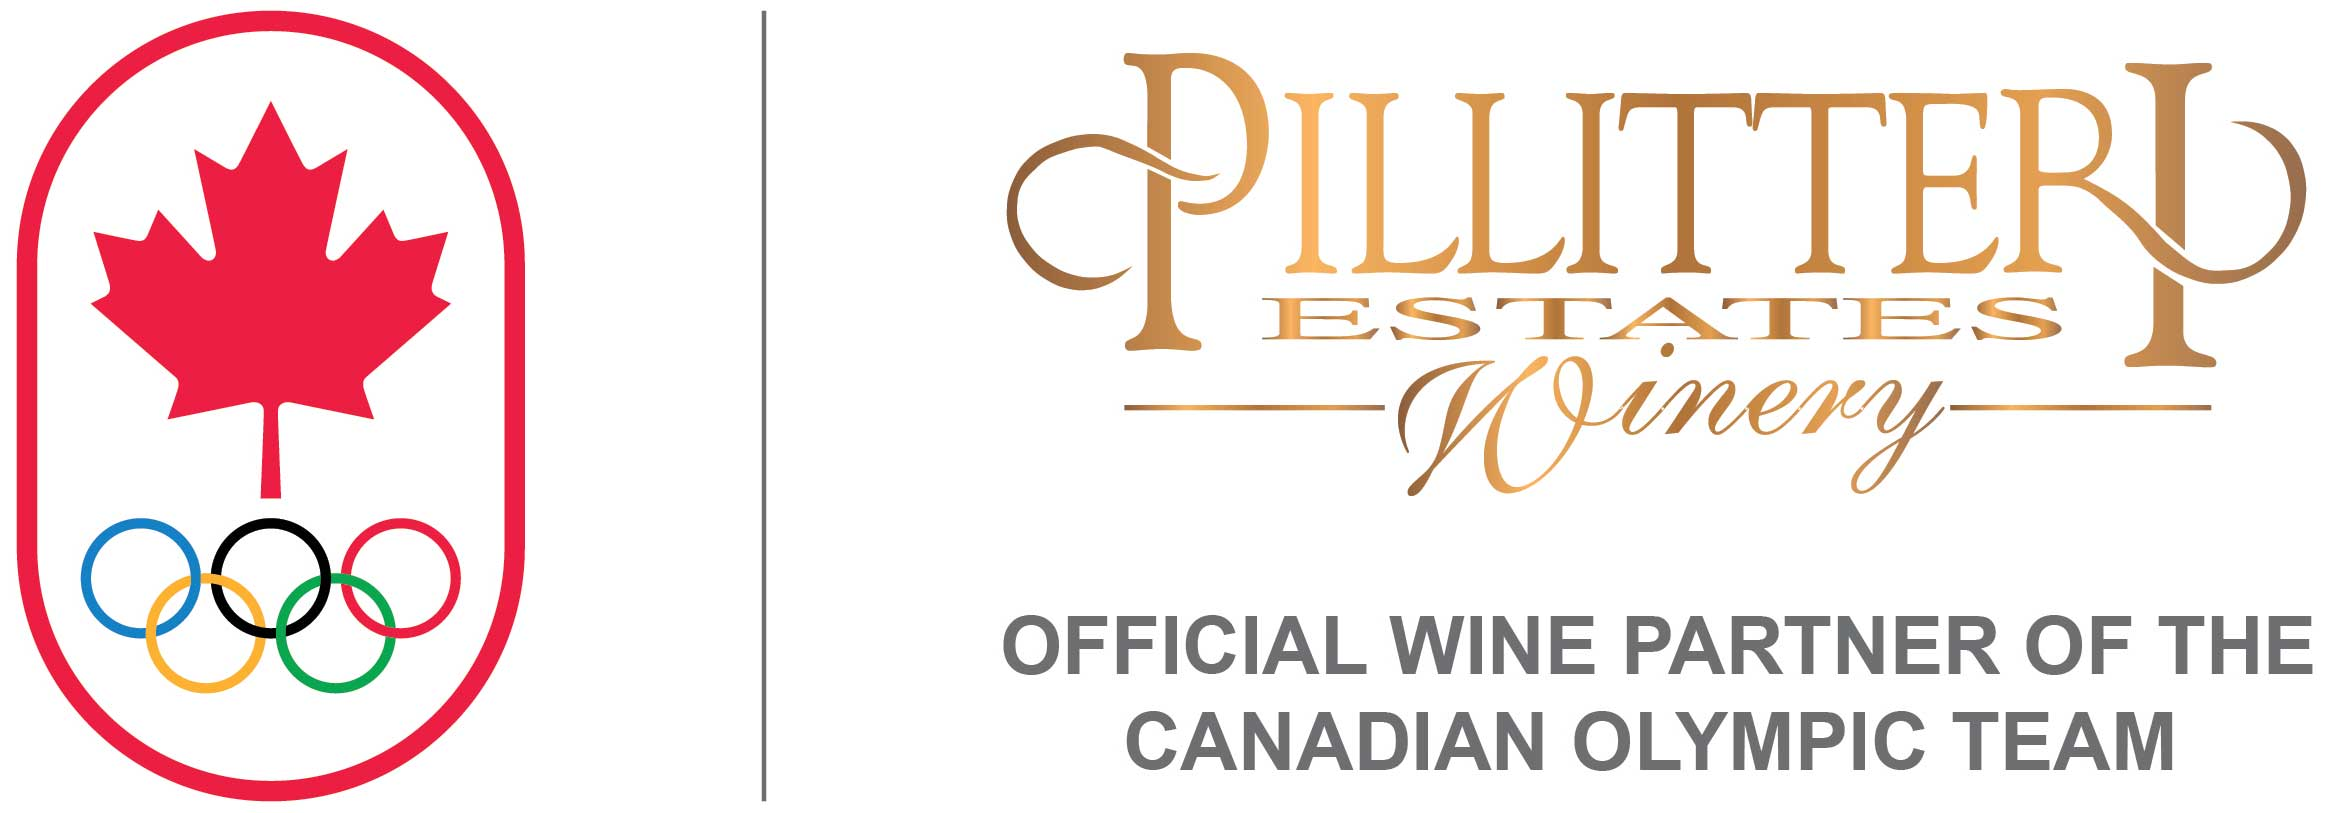 Official Wine Partner of the Canadian Olympic Team